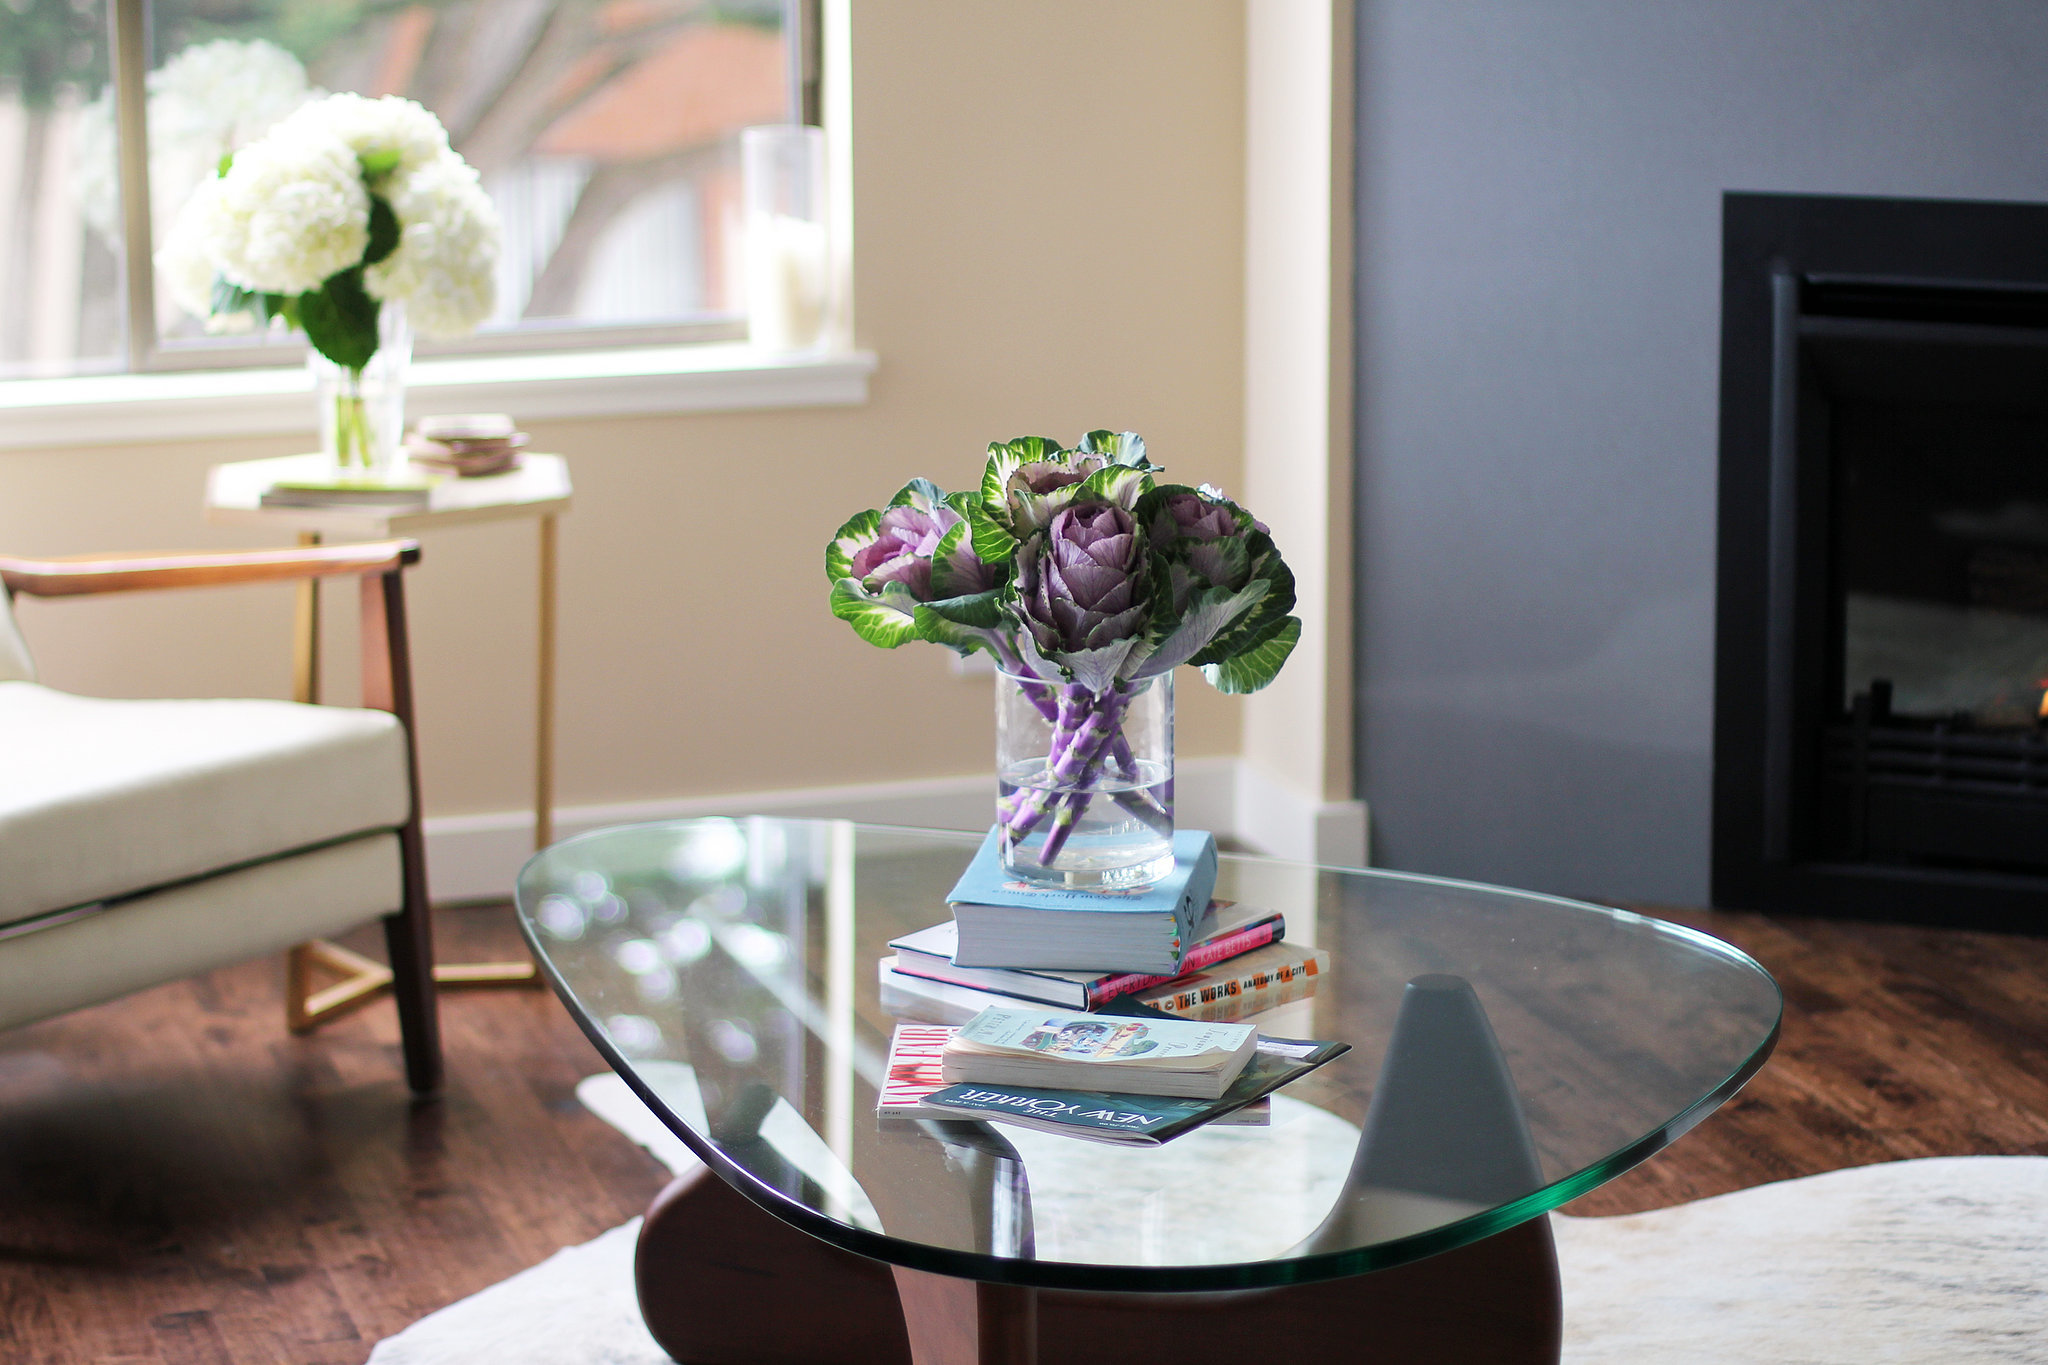 Would you believe those are kale flowers in that vase? It's one more essential picked by Annie for its wow factor.